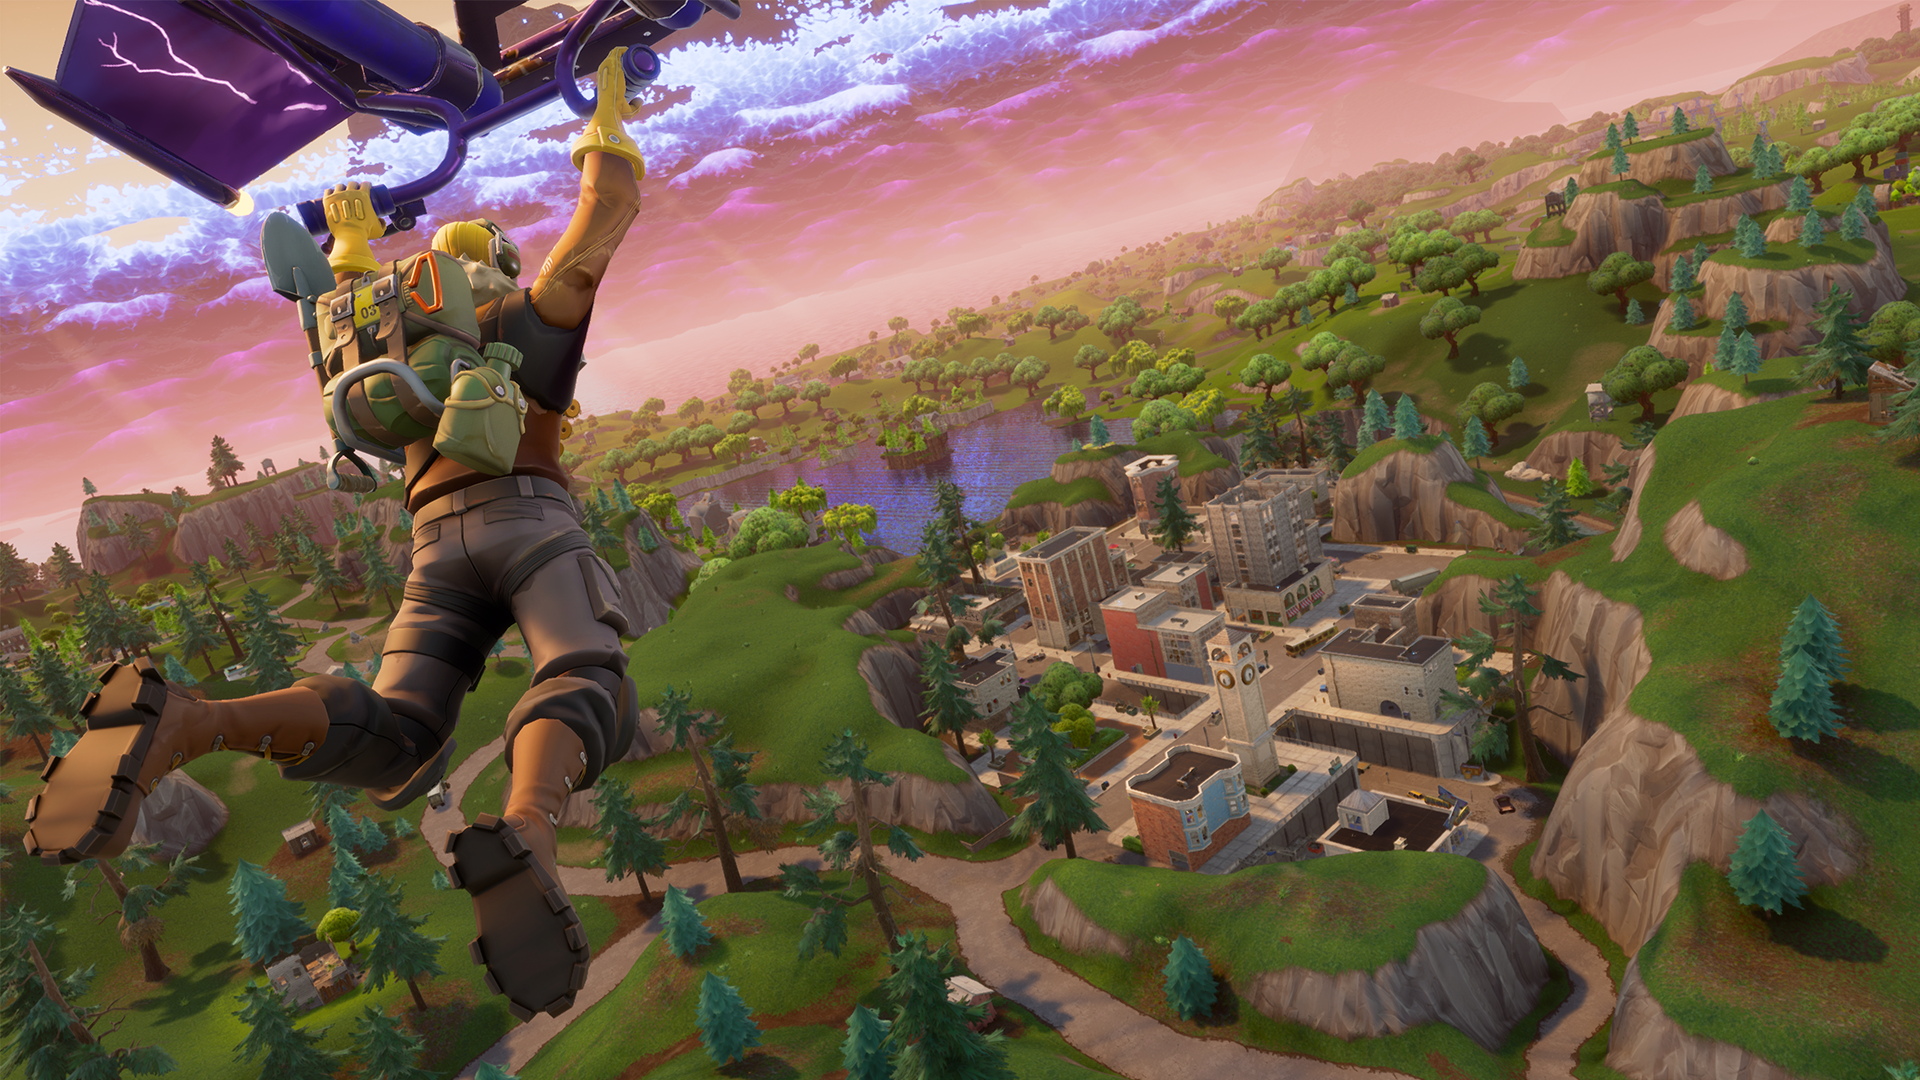 Fortnite for Android will only be available from the game's